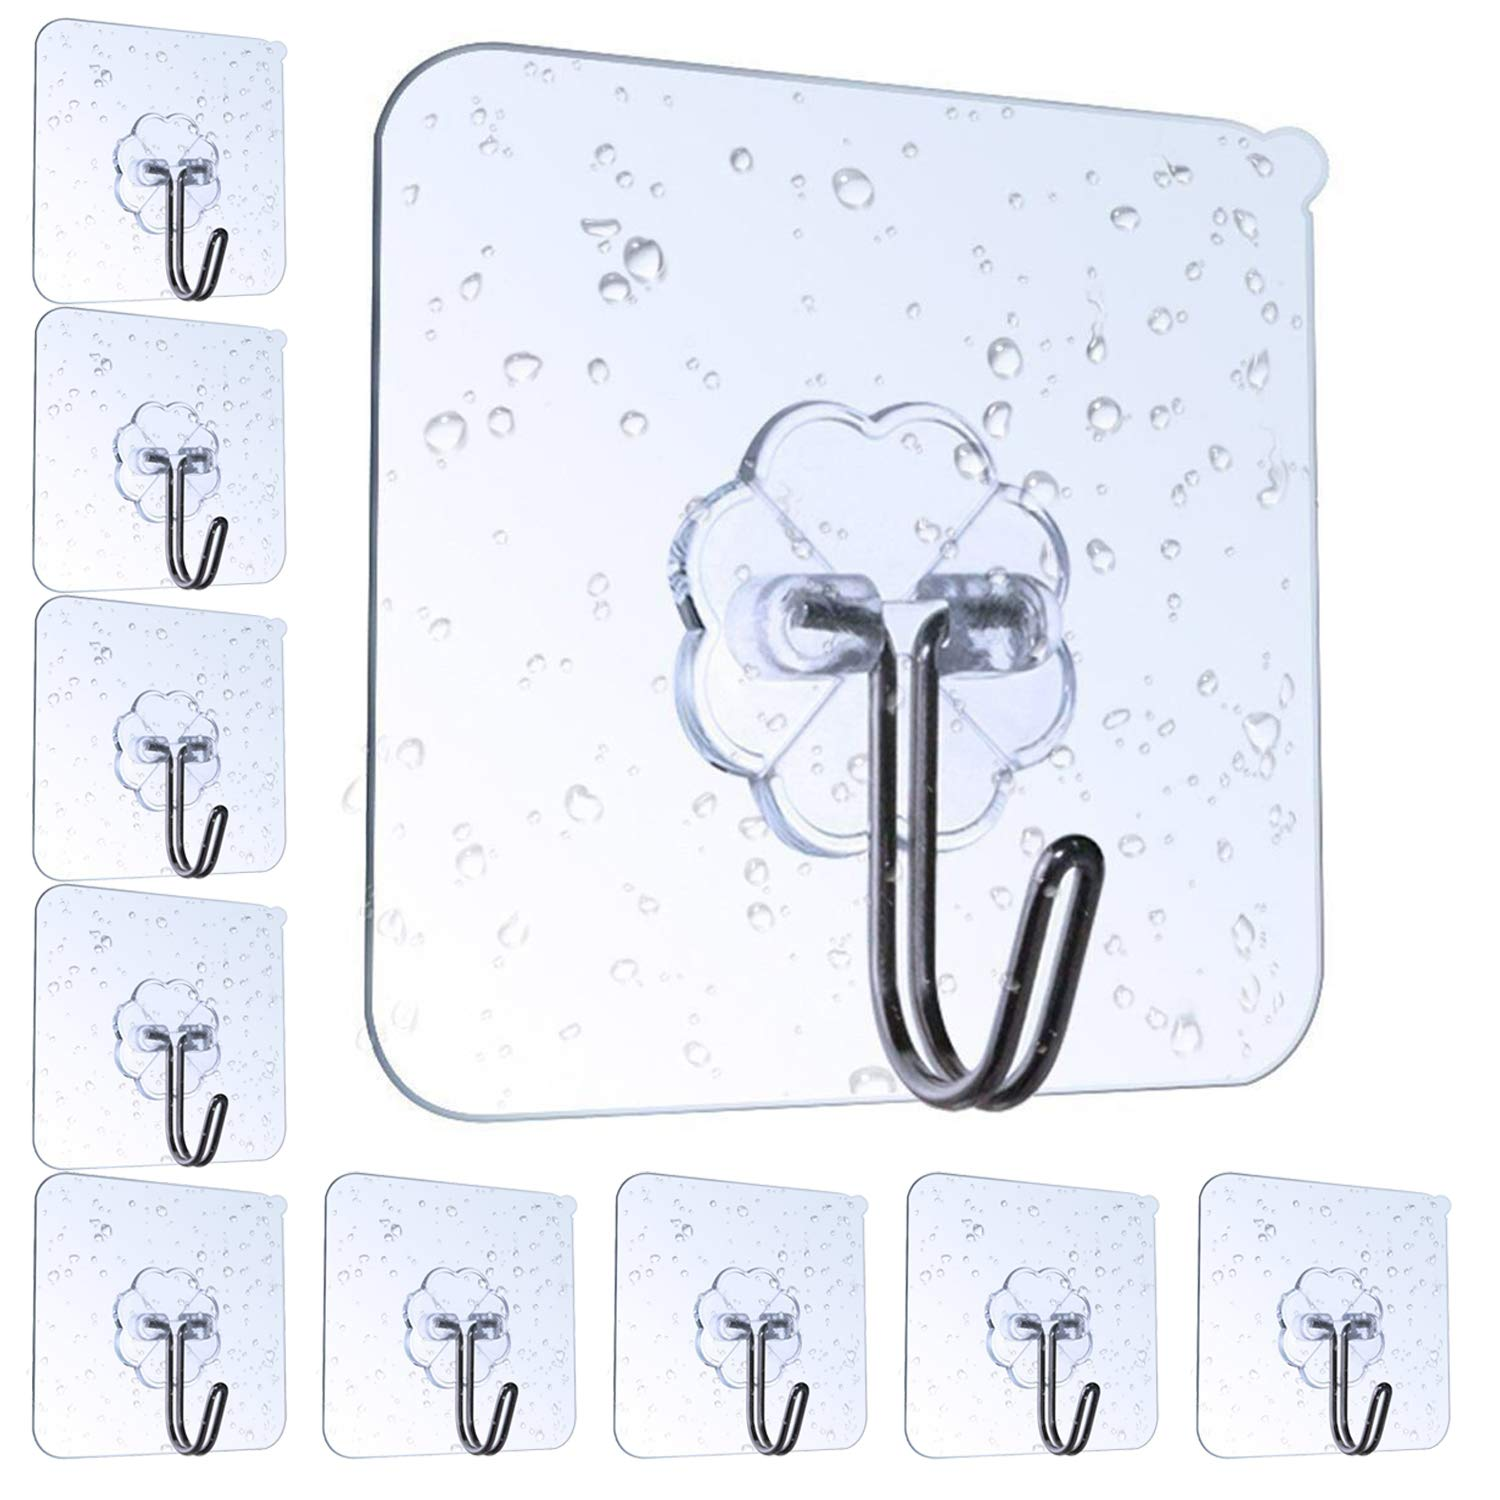 AOMEES Adhesive Hooks Adhesive Wall Hooks Heavy Duty Wall Hooks 8kg (Max) Self Adhesive Hook Clear Hooks Wall Hanger 90 Degree Rotating Without Nails Bathroom Transparent Hook Reusable Waterproof and Oilproof Hooks Without Borhren Clothes Hooks Towel Hook